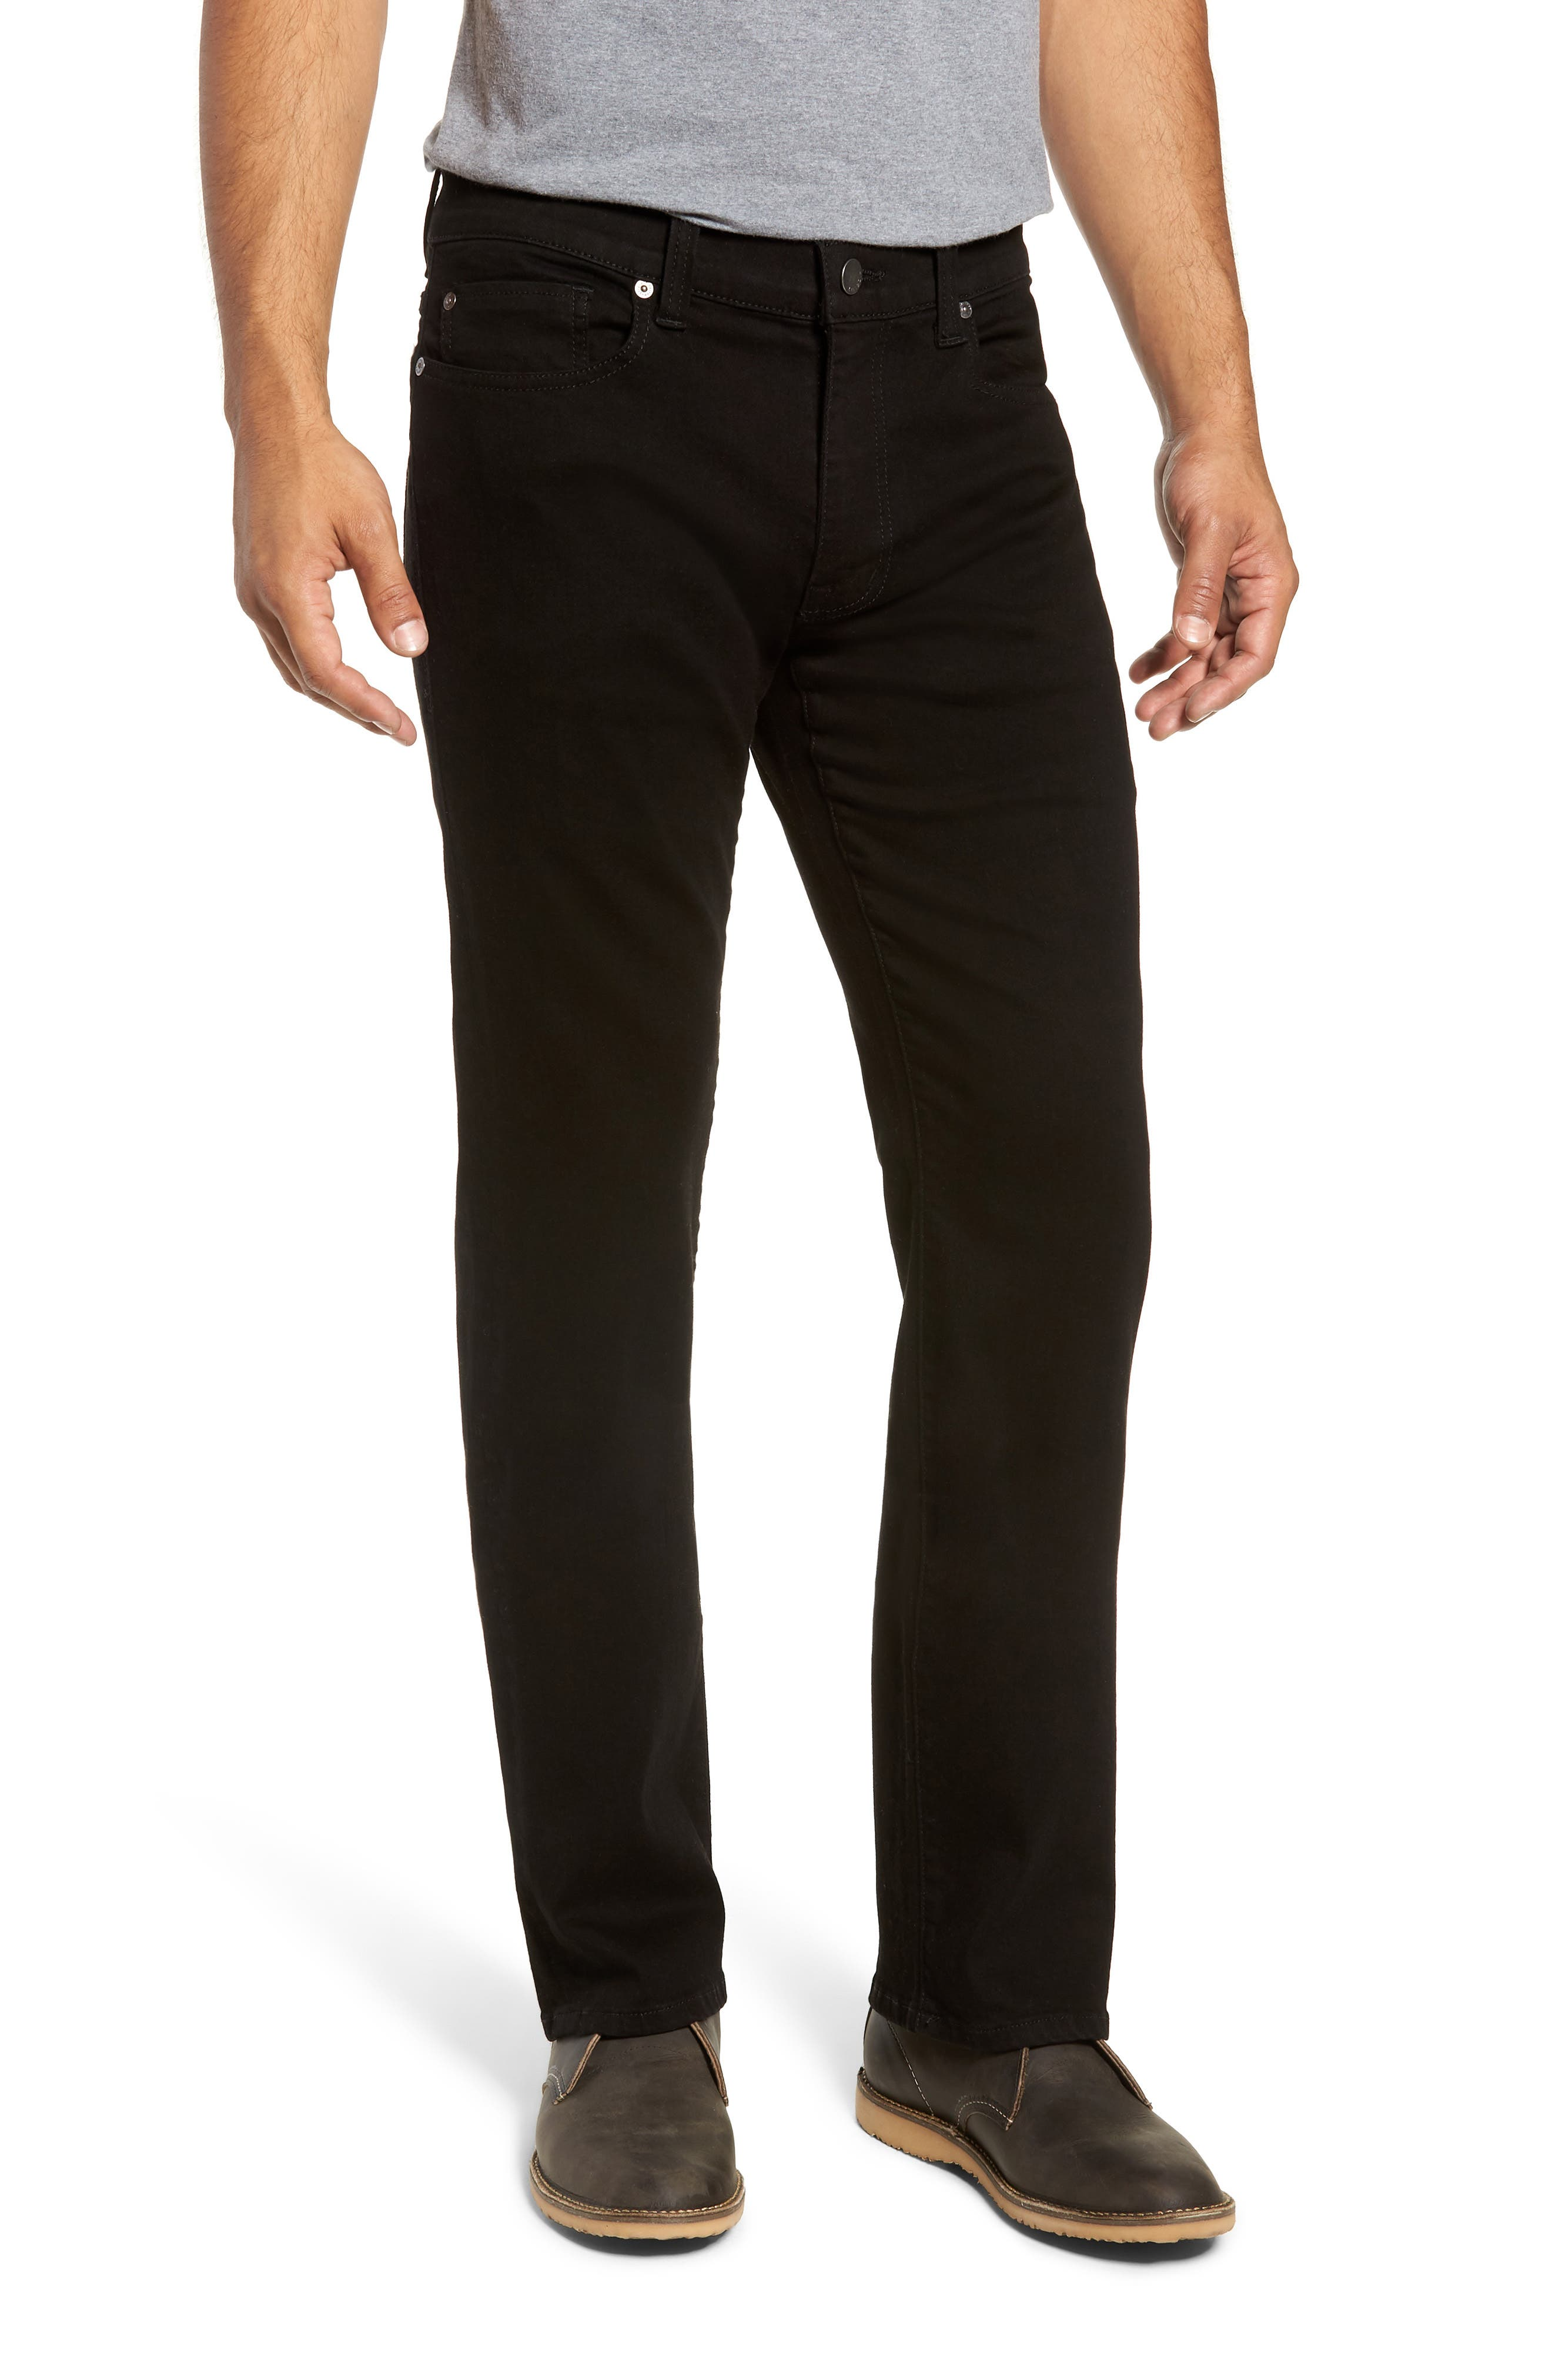 50-11 Relaxed Fit Jeans,                             Main thumbnail 1, color,                             GOTHAM BLACK